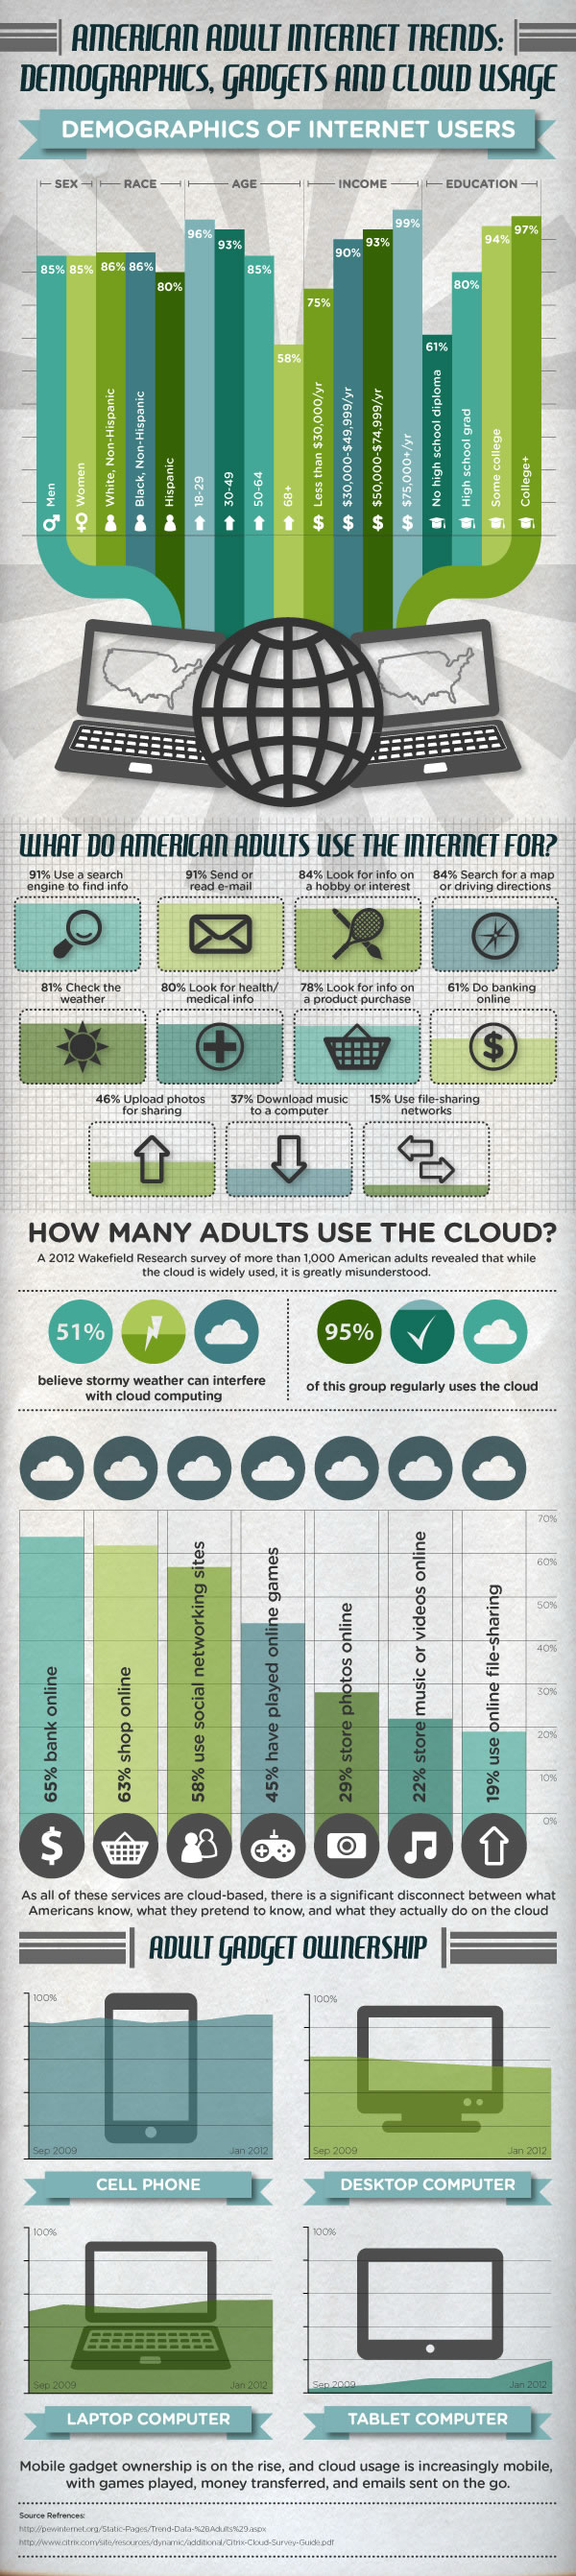 Cloud Hosting Infographic